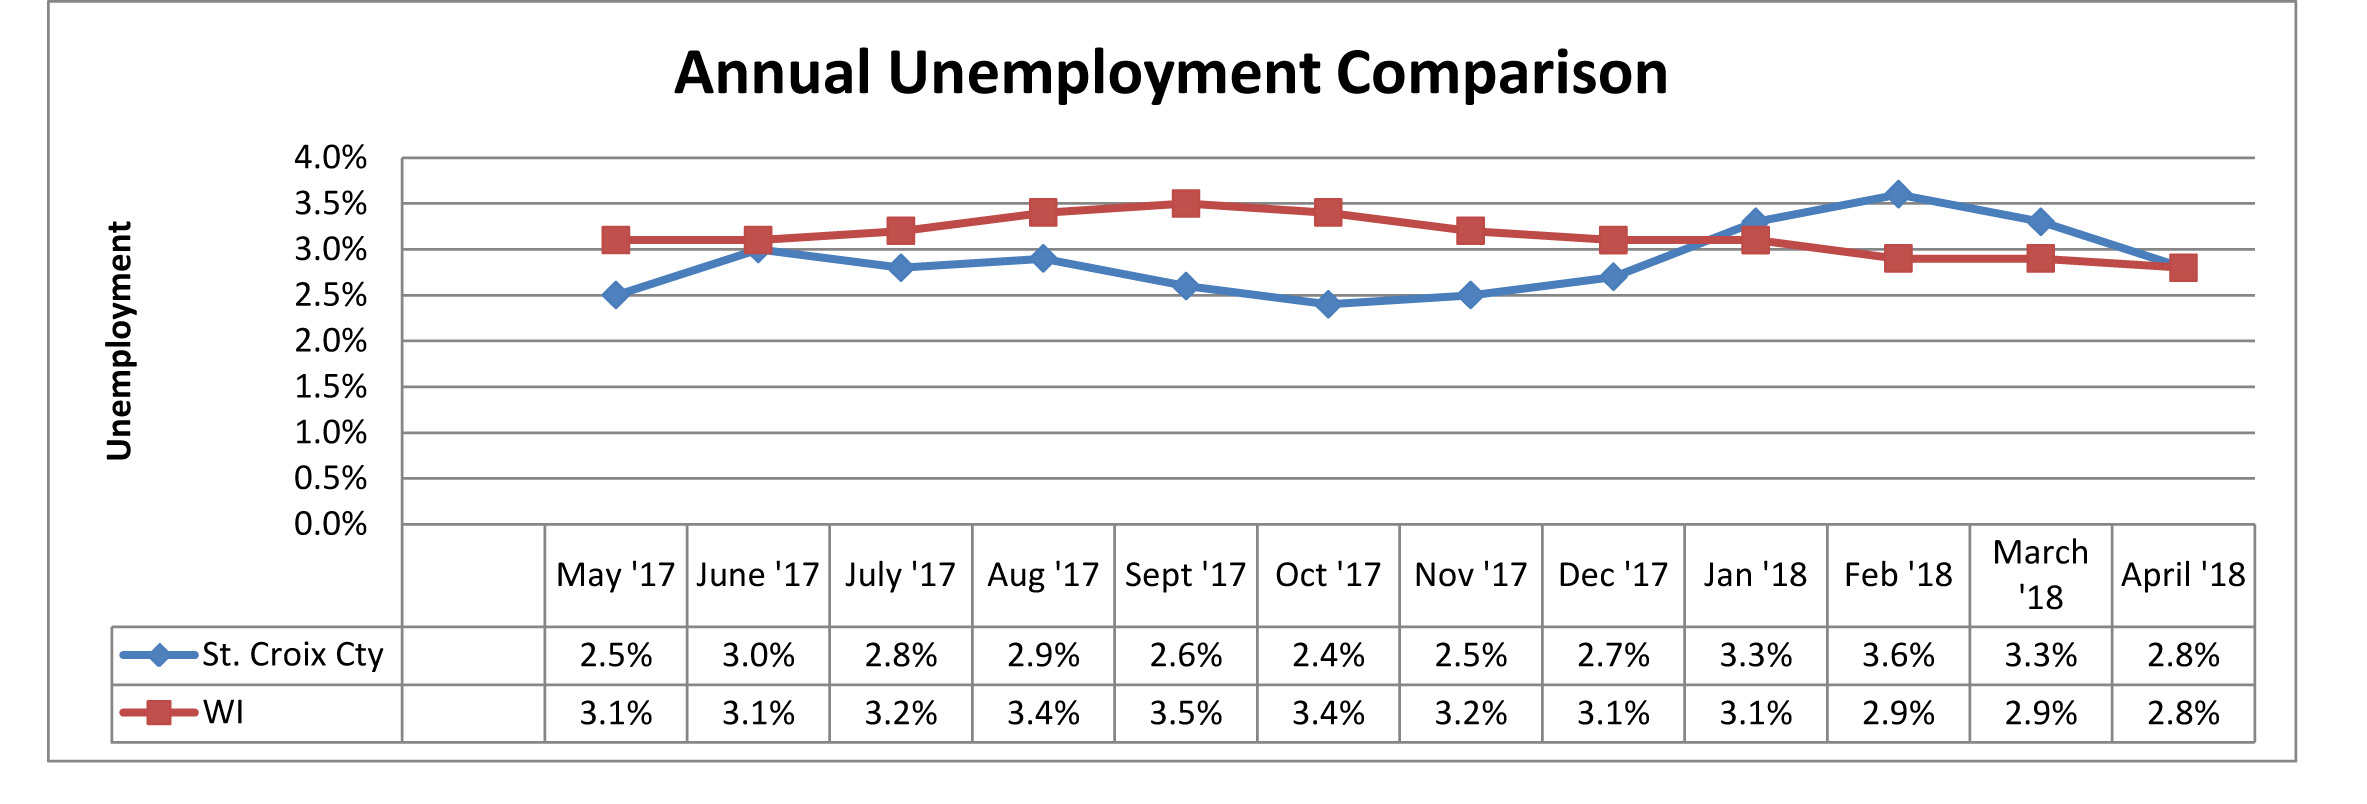 April 2018 Unemployment Comparison